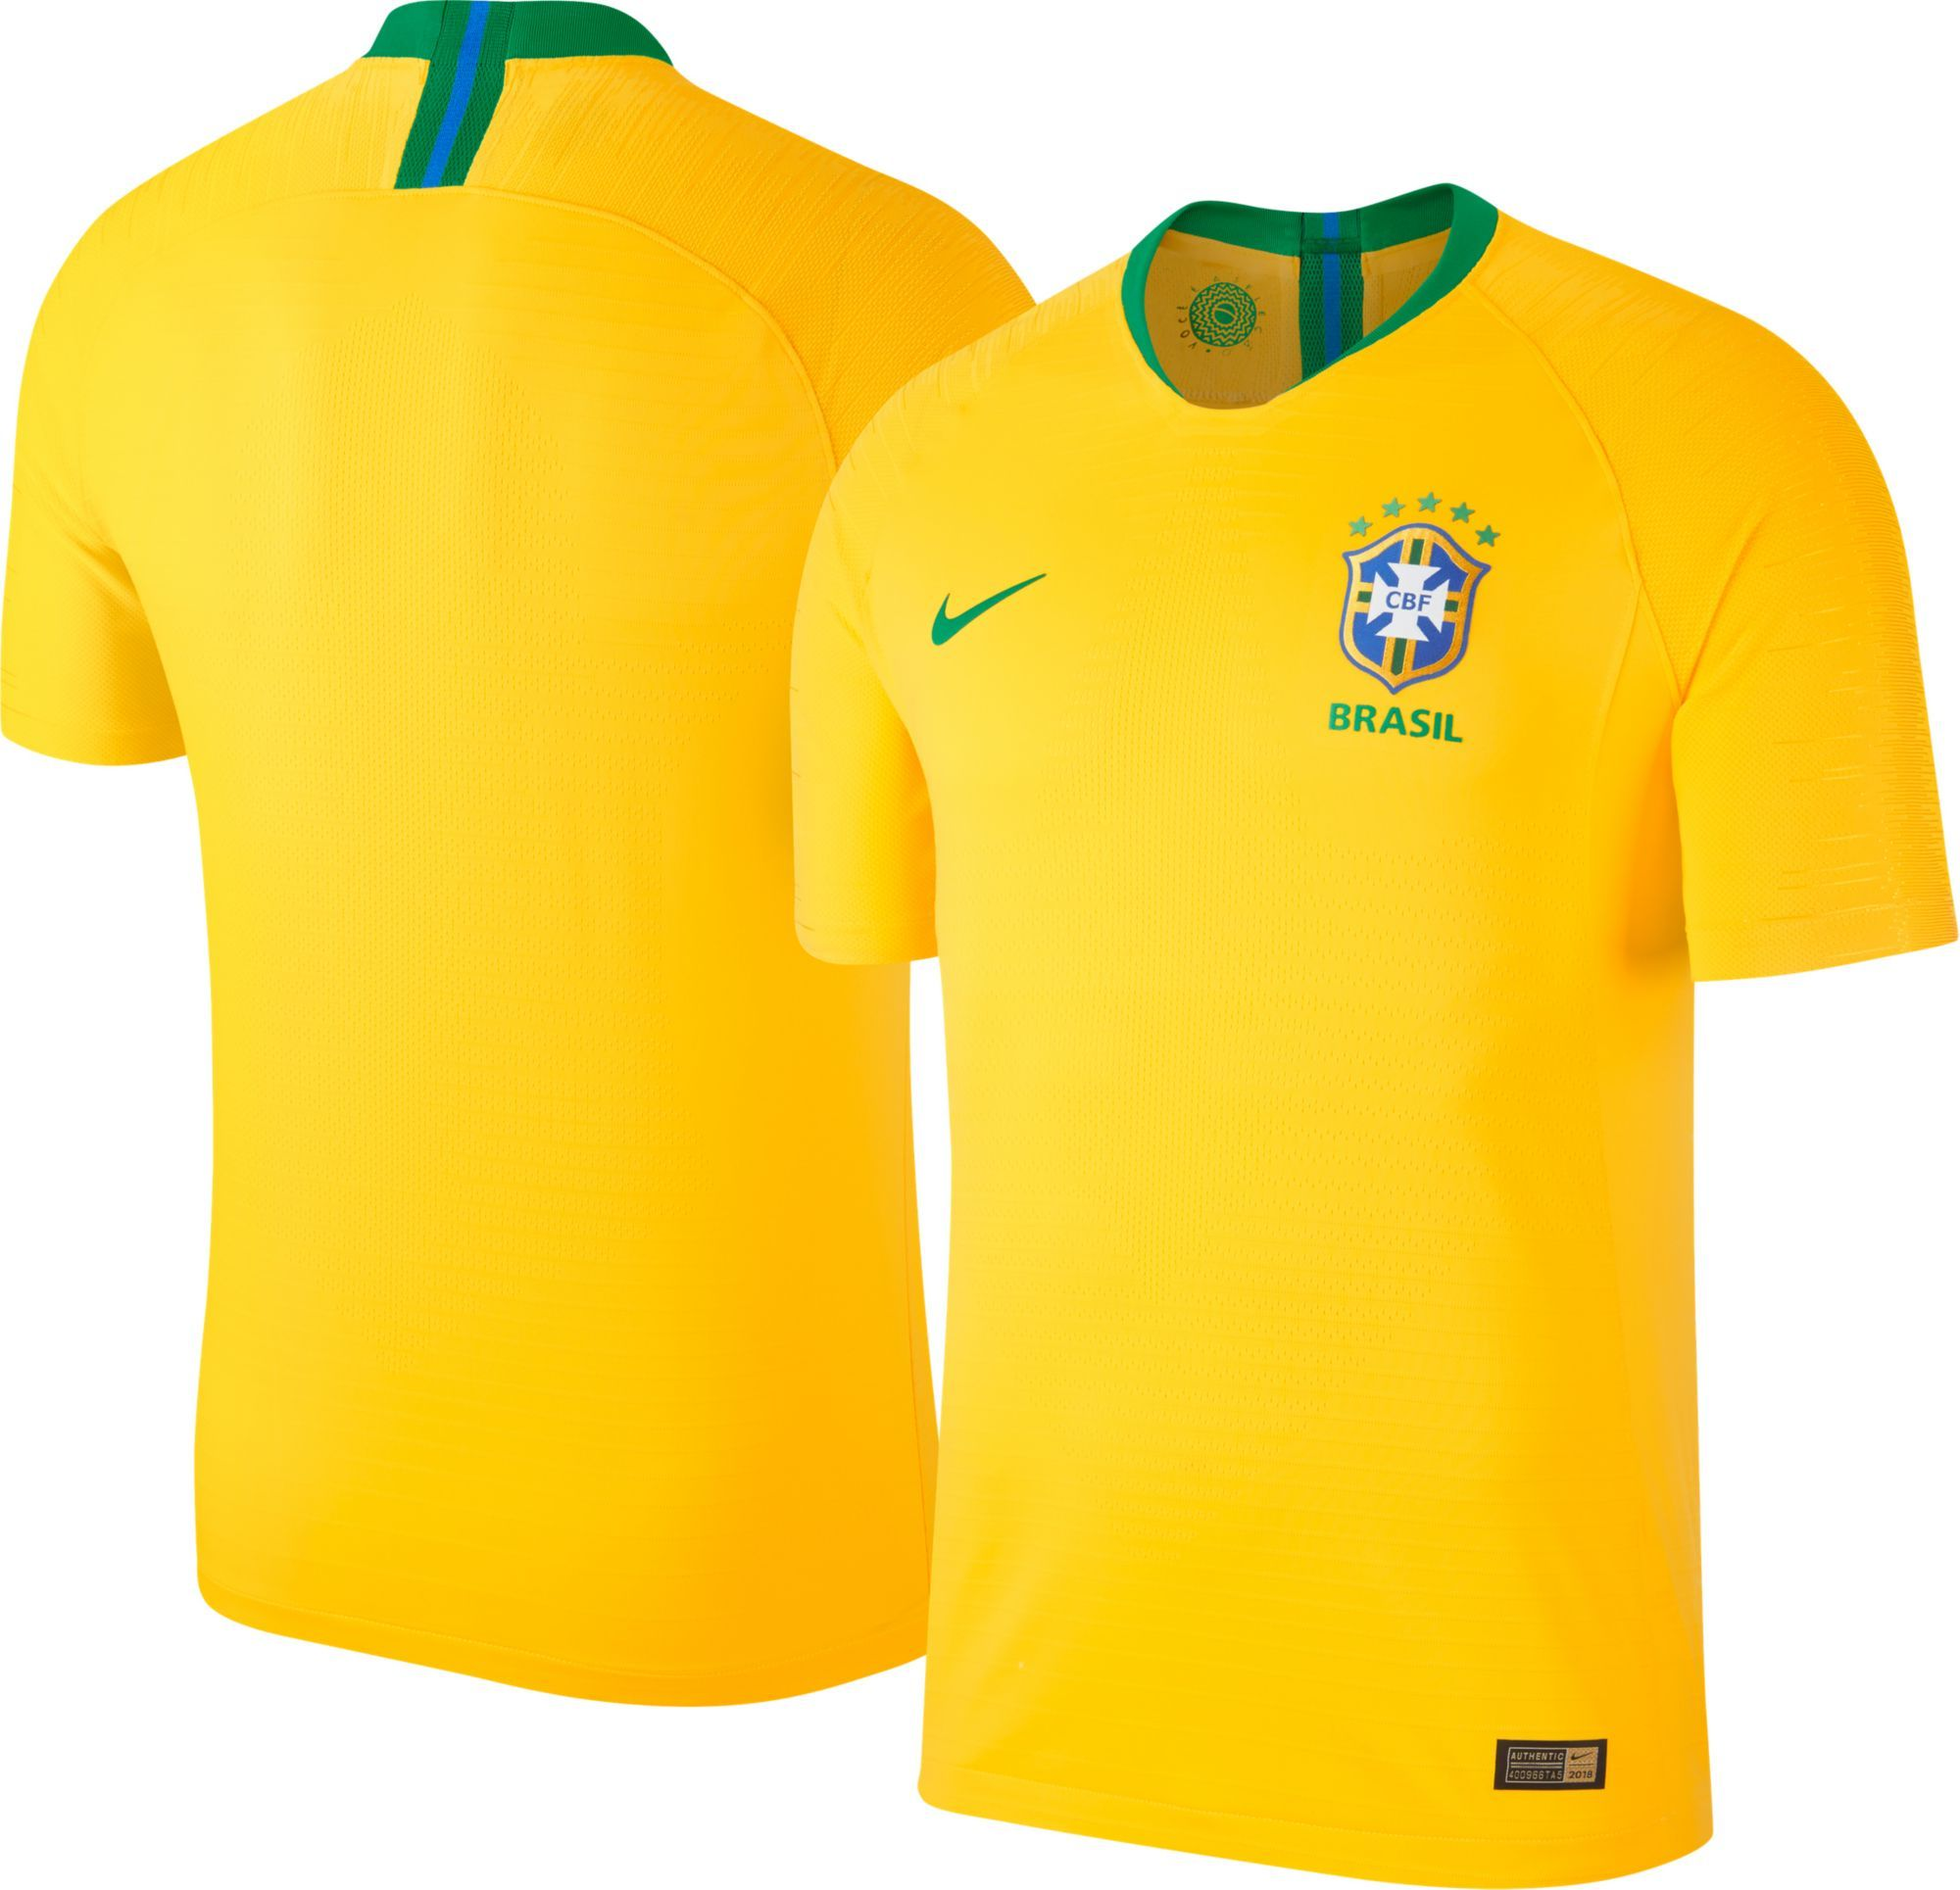 eb0bdde32d0 Nike Men's 2018 Fifa World Cup Brazil Vapor Match Home Jersey, Size:  Medium, Multi